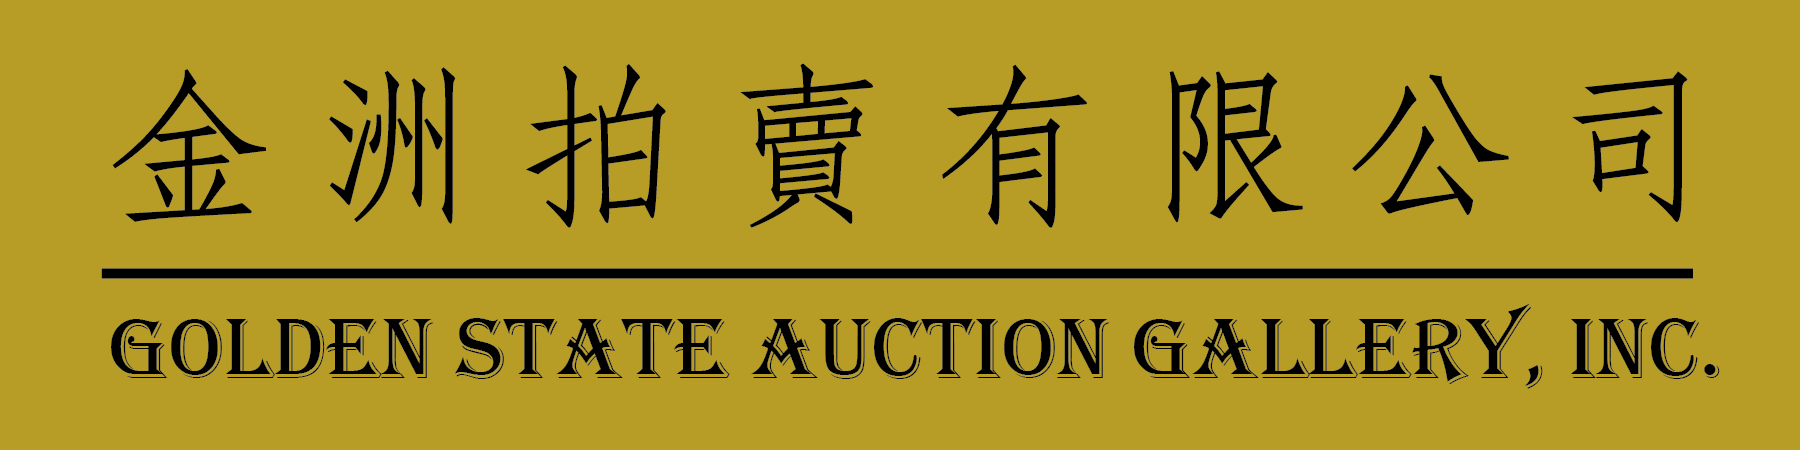 Golden State Auction Gallery